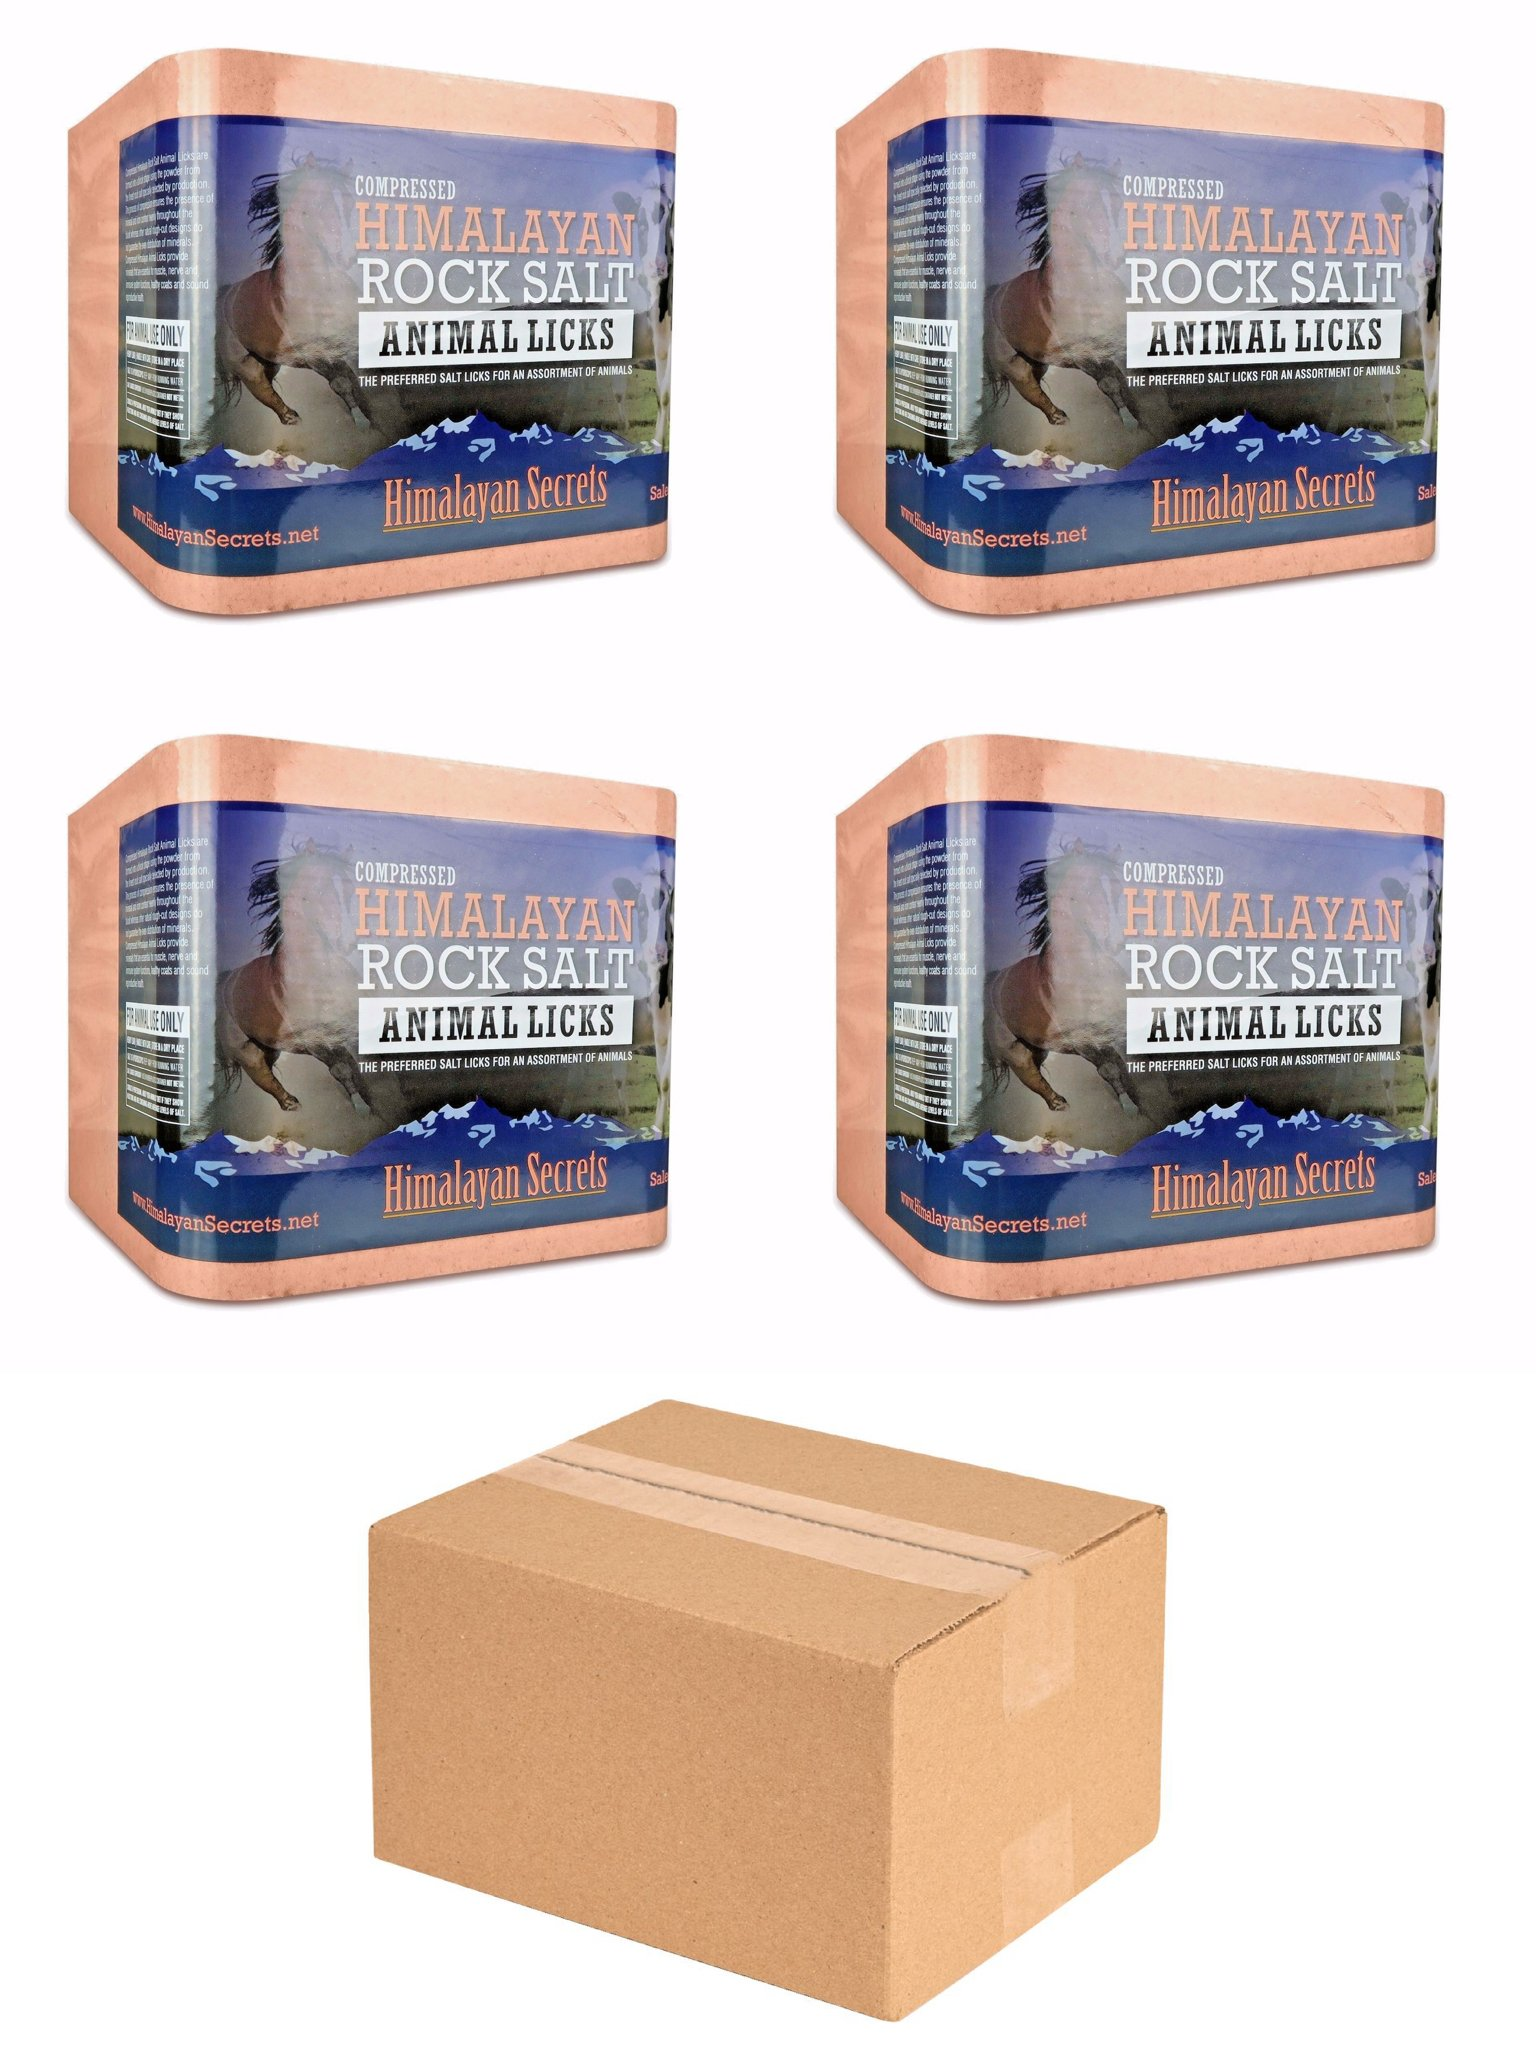 Compressed Himalayan Salt Lick For Horse, Cow, Goat, etc. Made From Specially Selected Higher Quality Himalayan Salt - Evenly Distributed Minerals - 100% Pure & Natural (3 Sizes) (Set of 4 (11 LB))